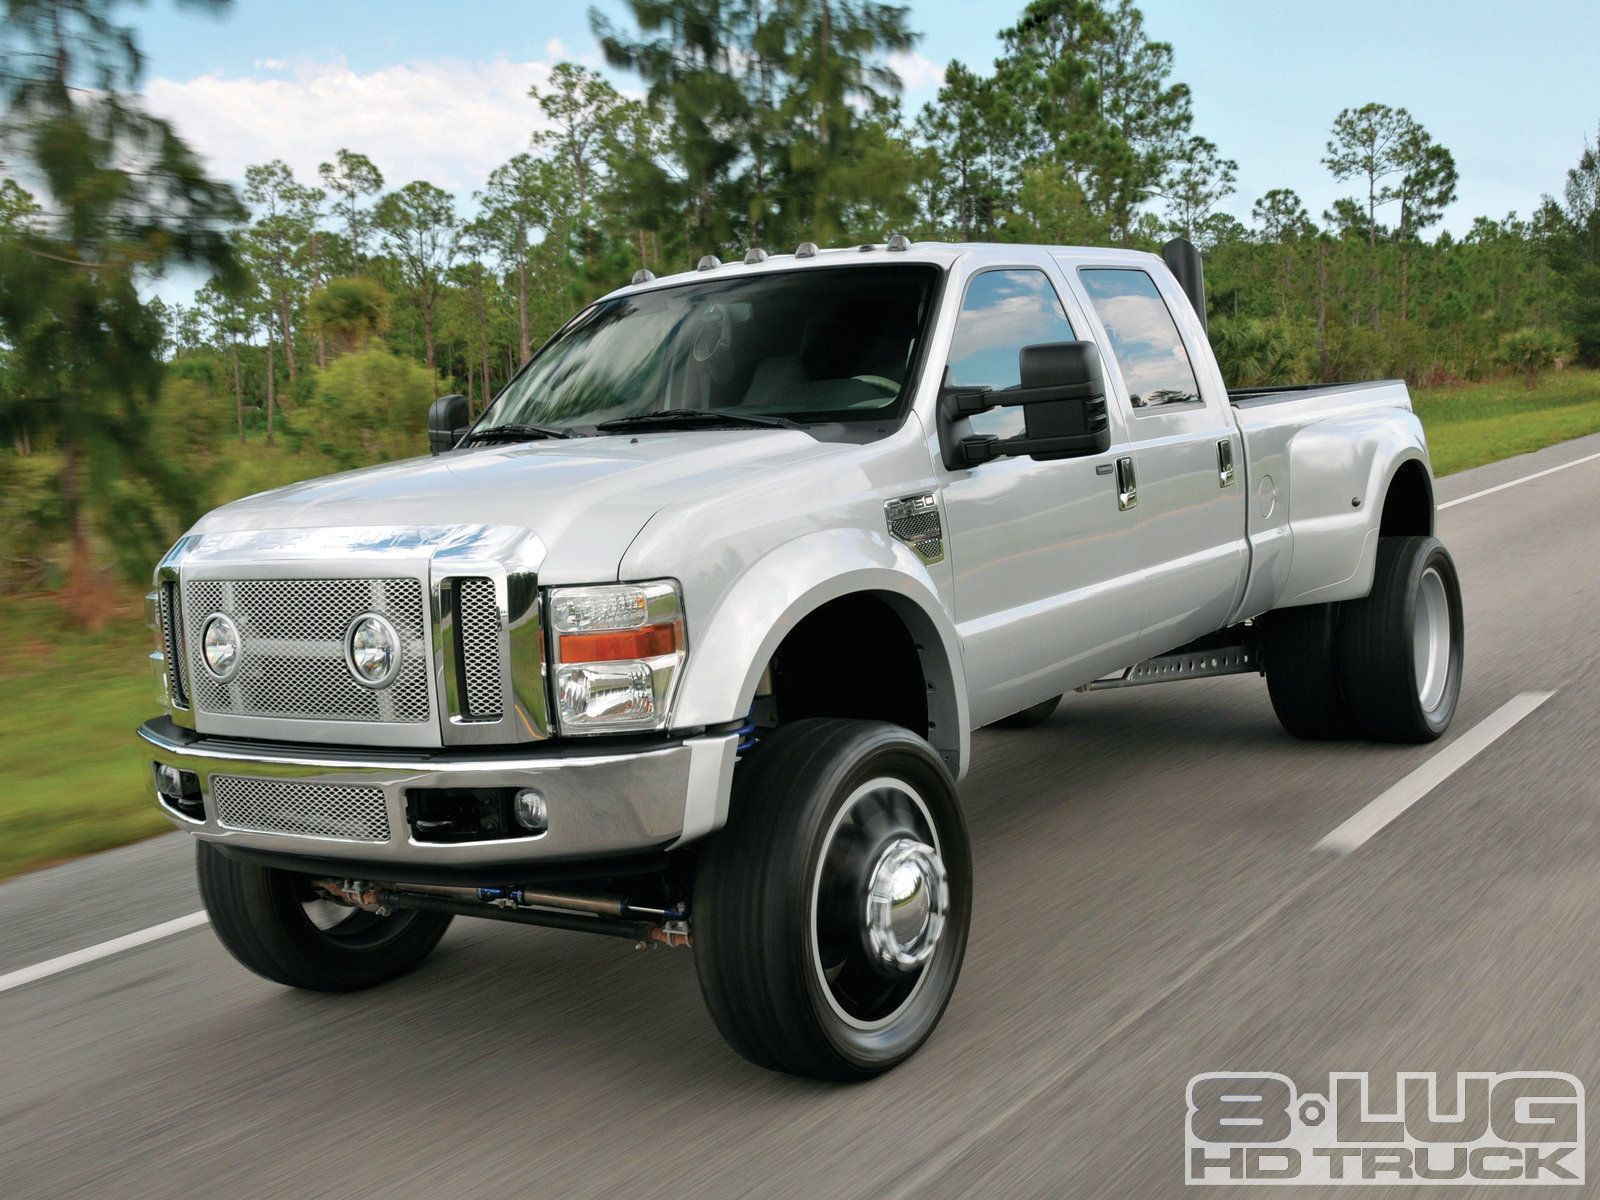 Lifted to luxury 2008 ford f450 lariat super duty american force 24 inch wheels photo 12